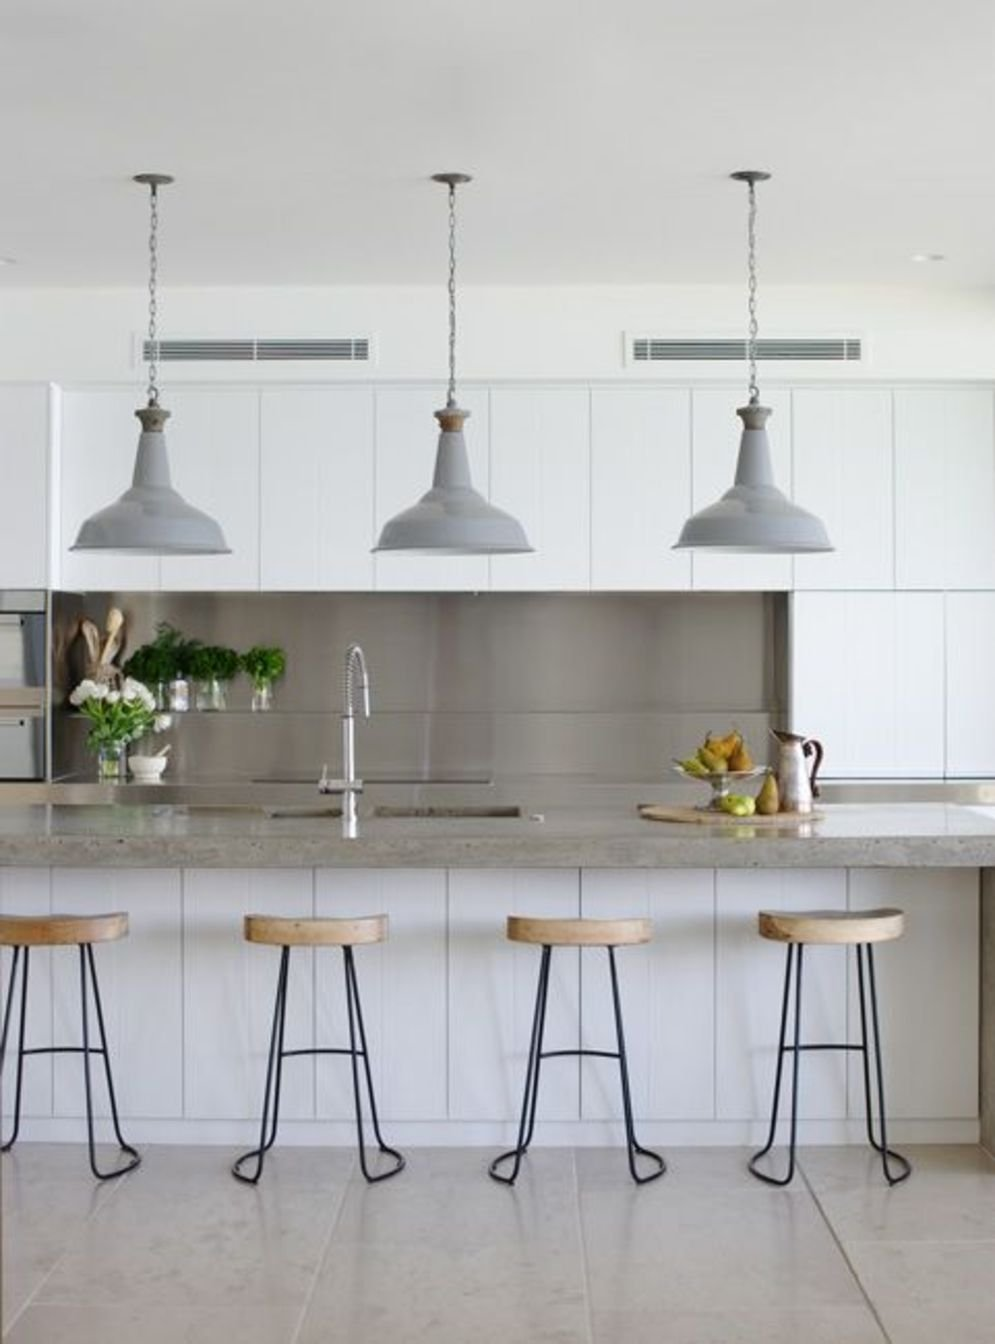 Classy kitchen styles in bold display maximizing concrete benchtop designs Image 14